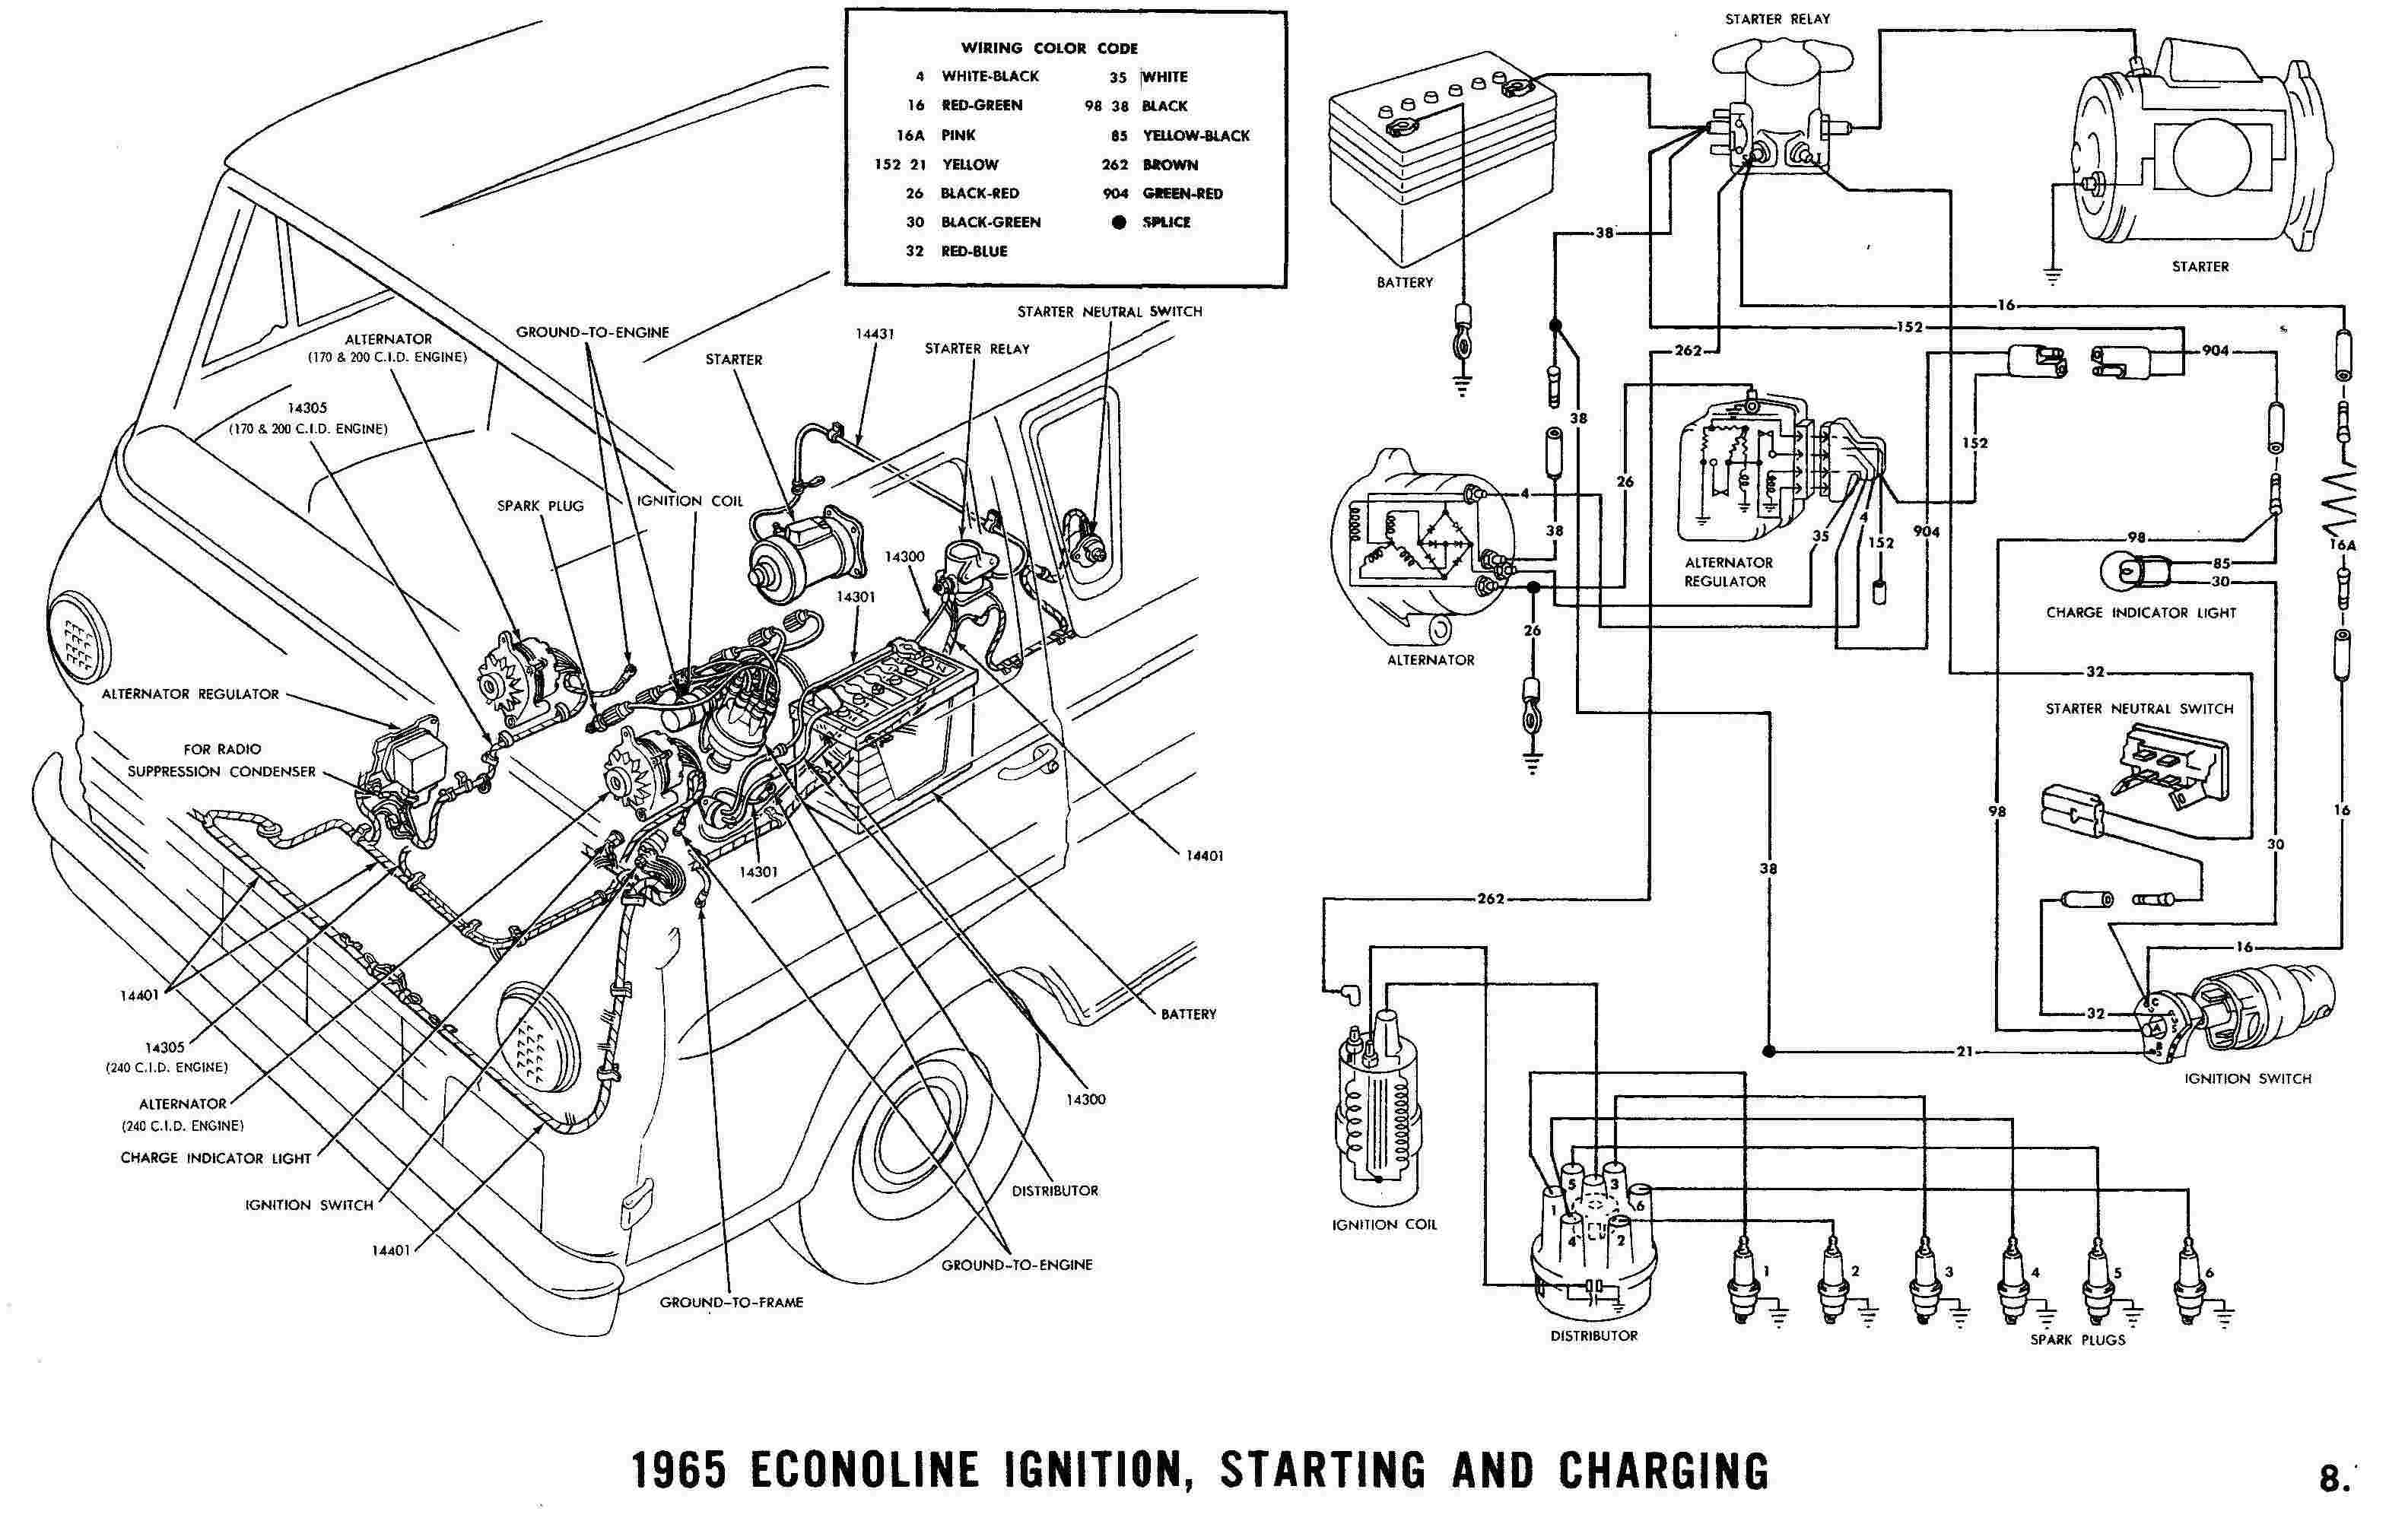 Engine Doghouse Wiring Harness